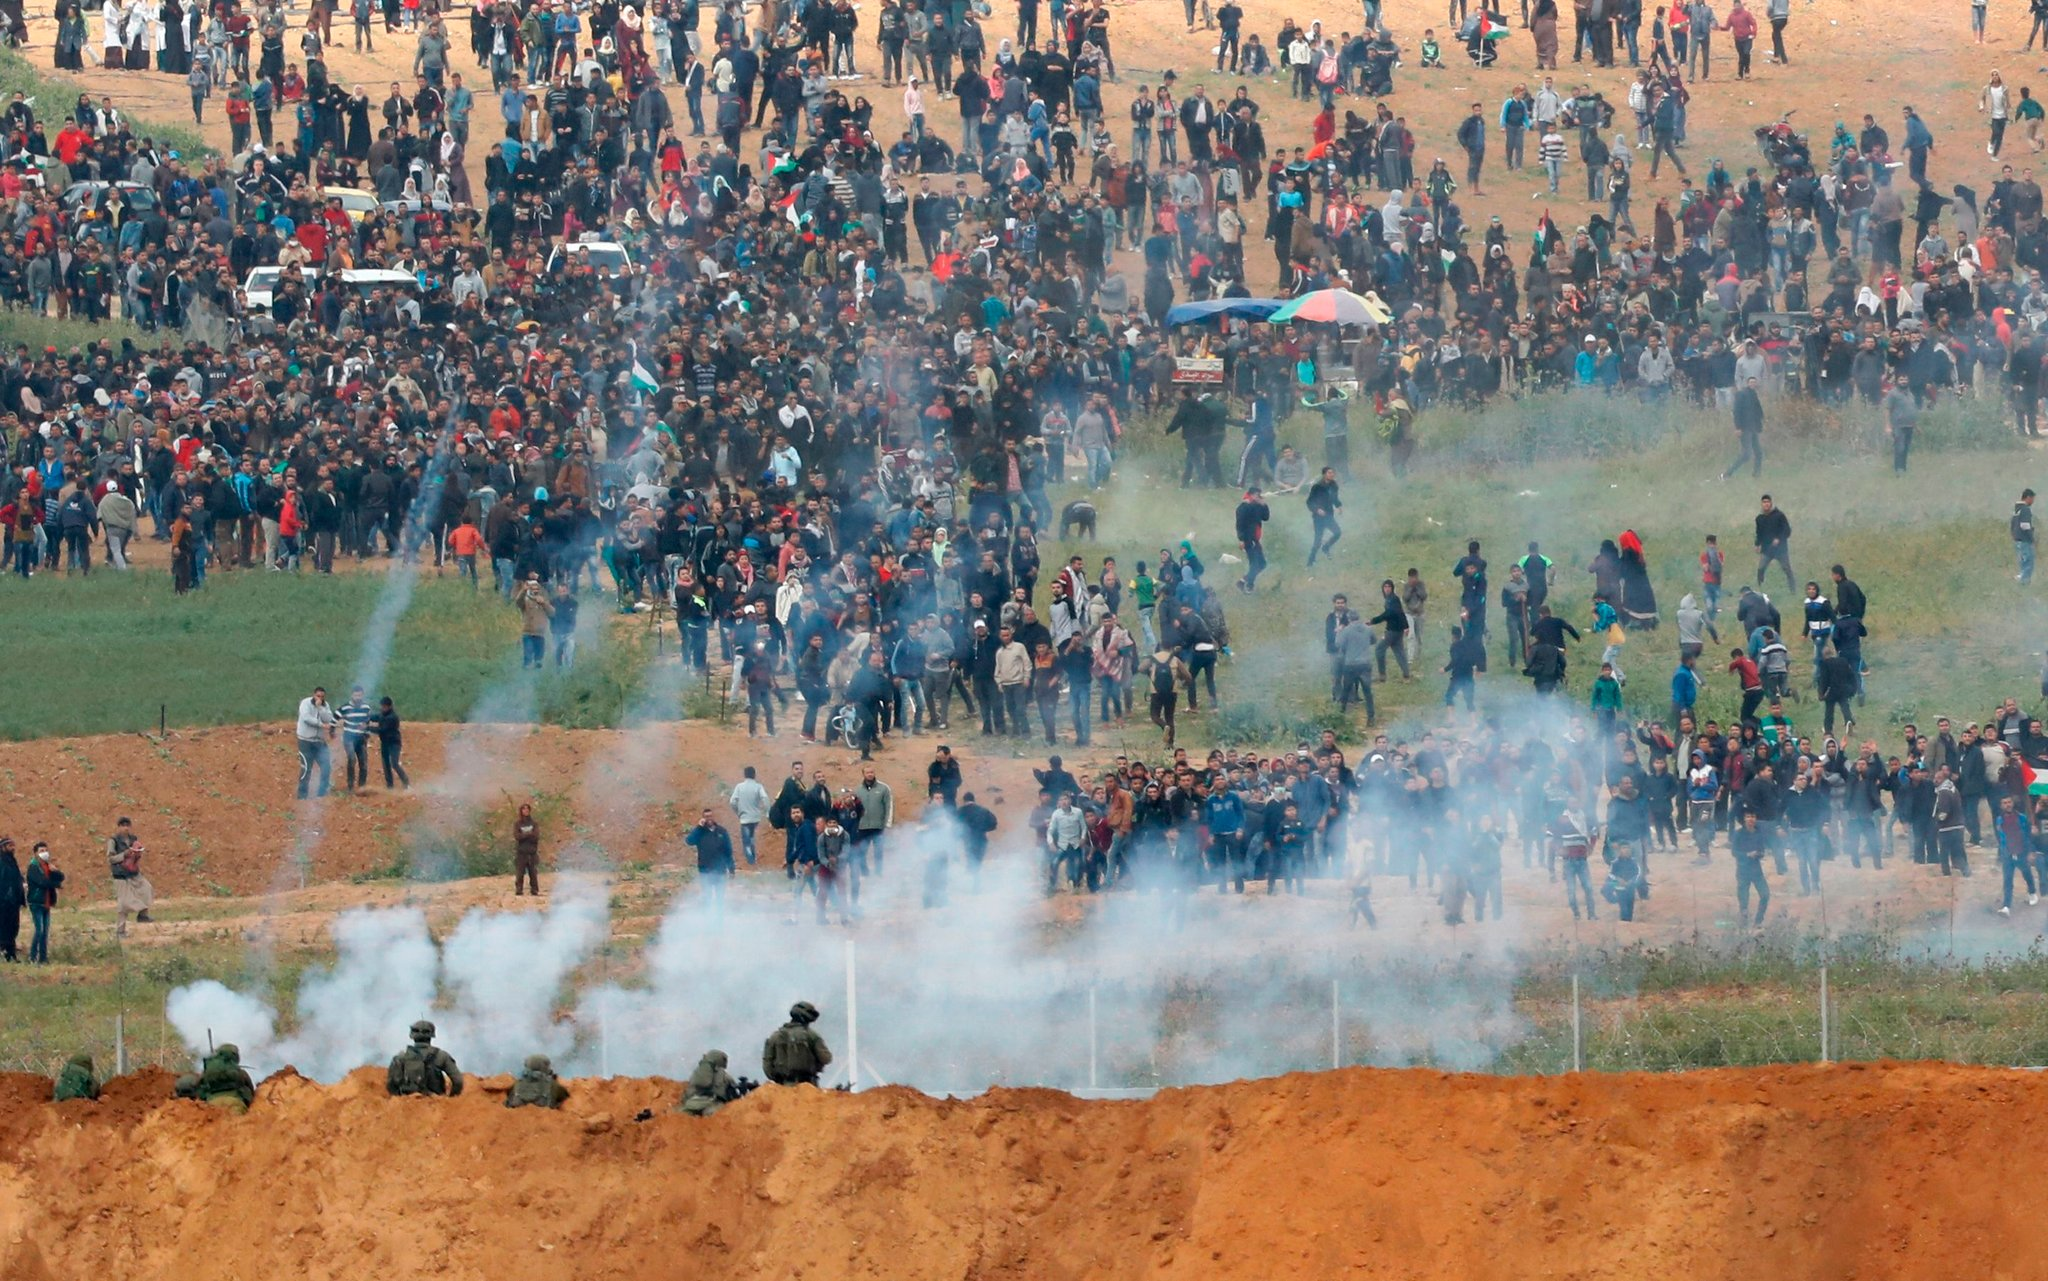 Israeli troops face Palestinian protesters along the Gaza border fence. (Photo: New York Times)